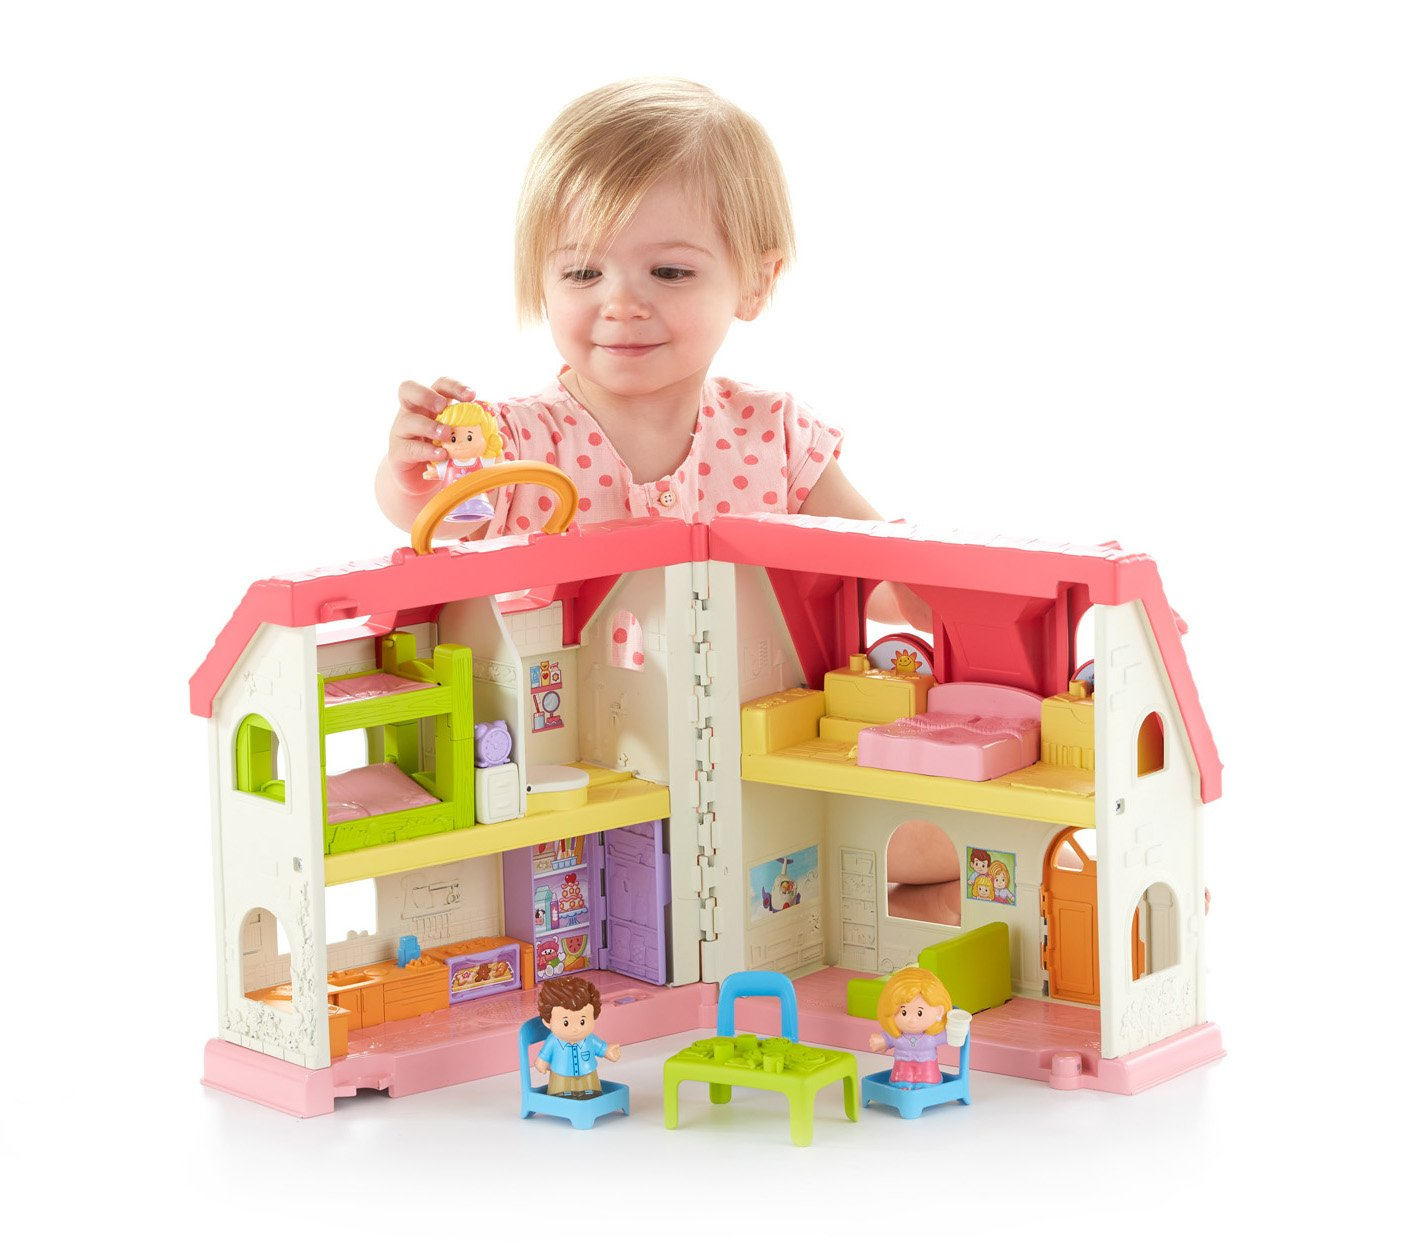 Best Toys For Girls : Whatre the best toys for year old girls in